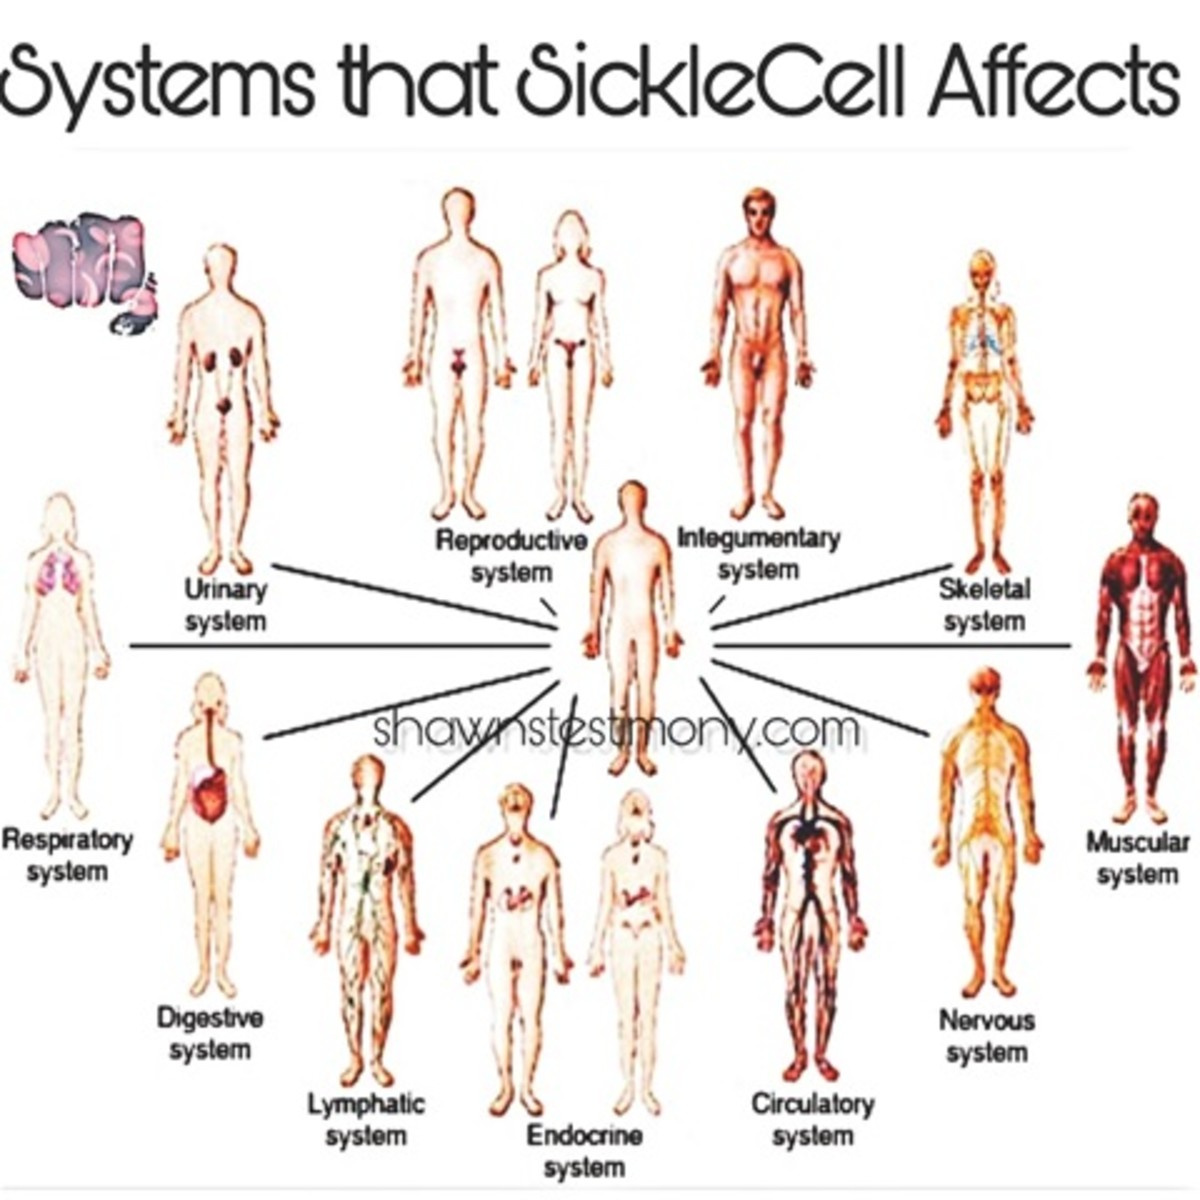 Biological systems in humans